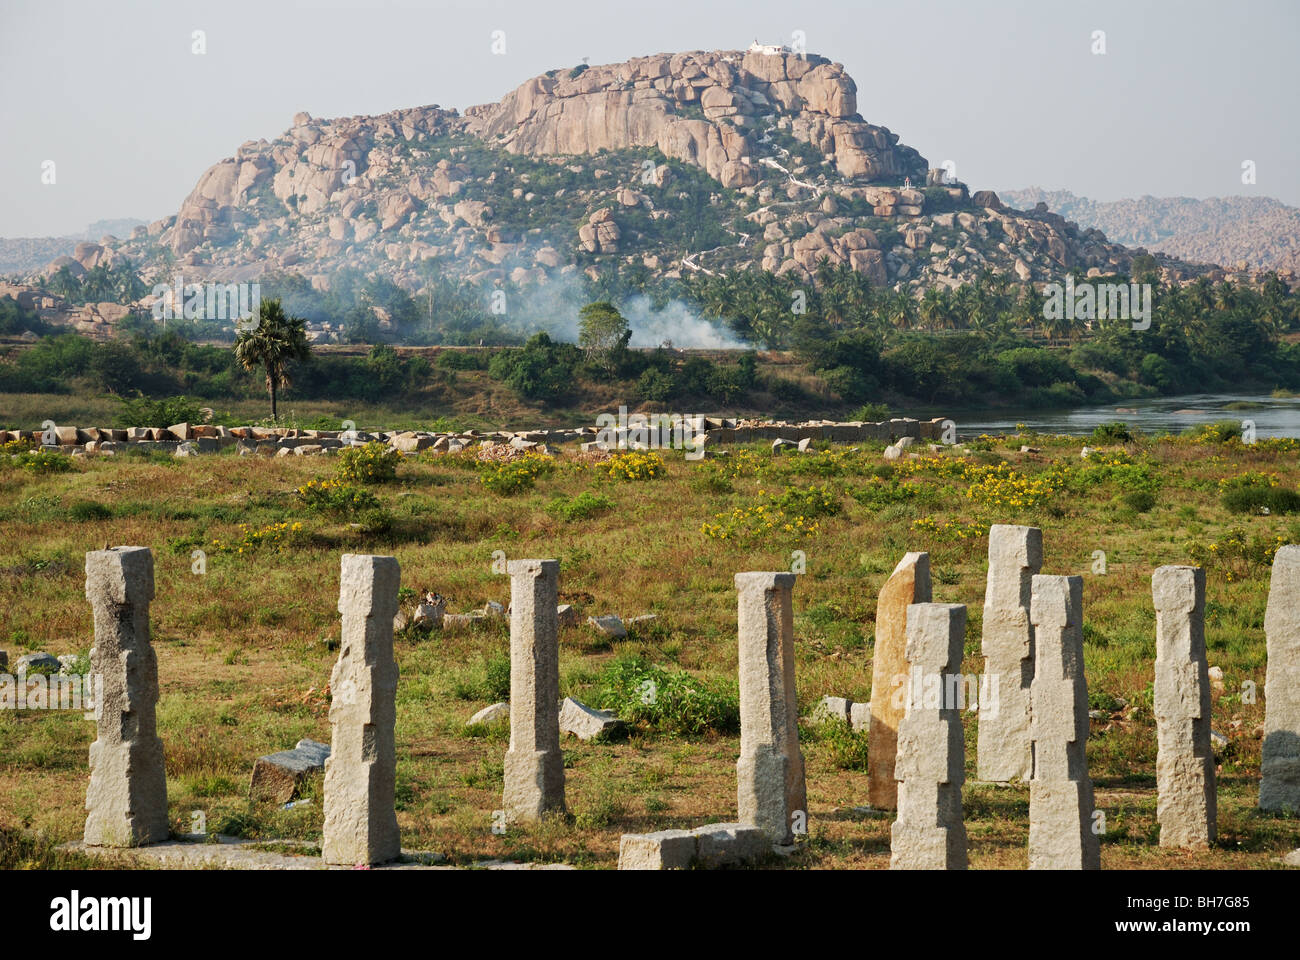 Ancient bridge in ruins with the river and a rocky hill in the background. Hampi,India. - Stock Image